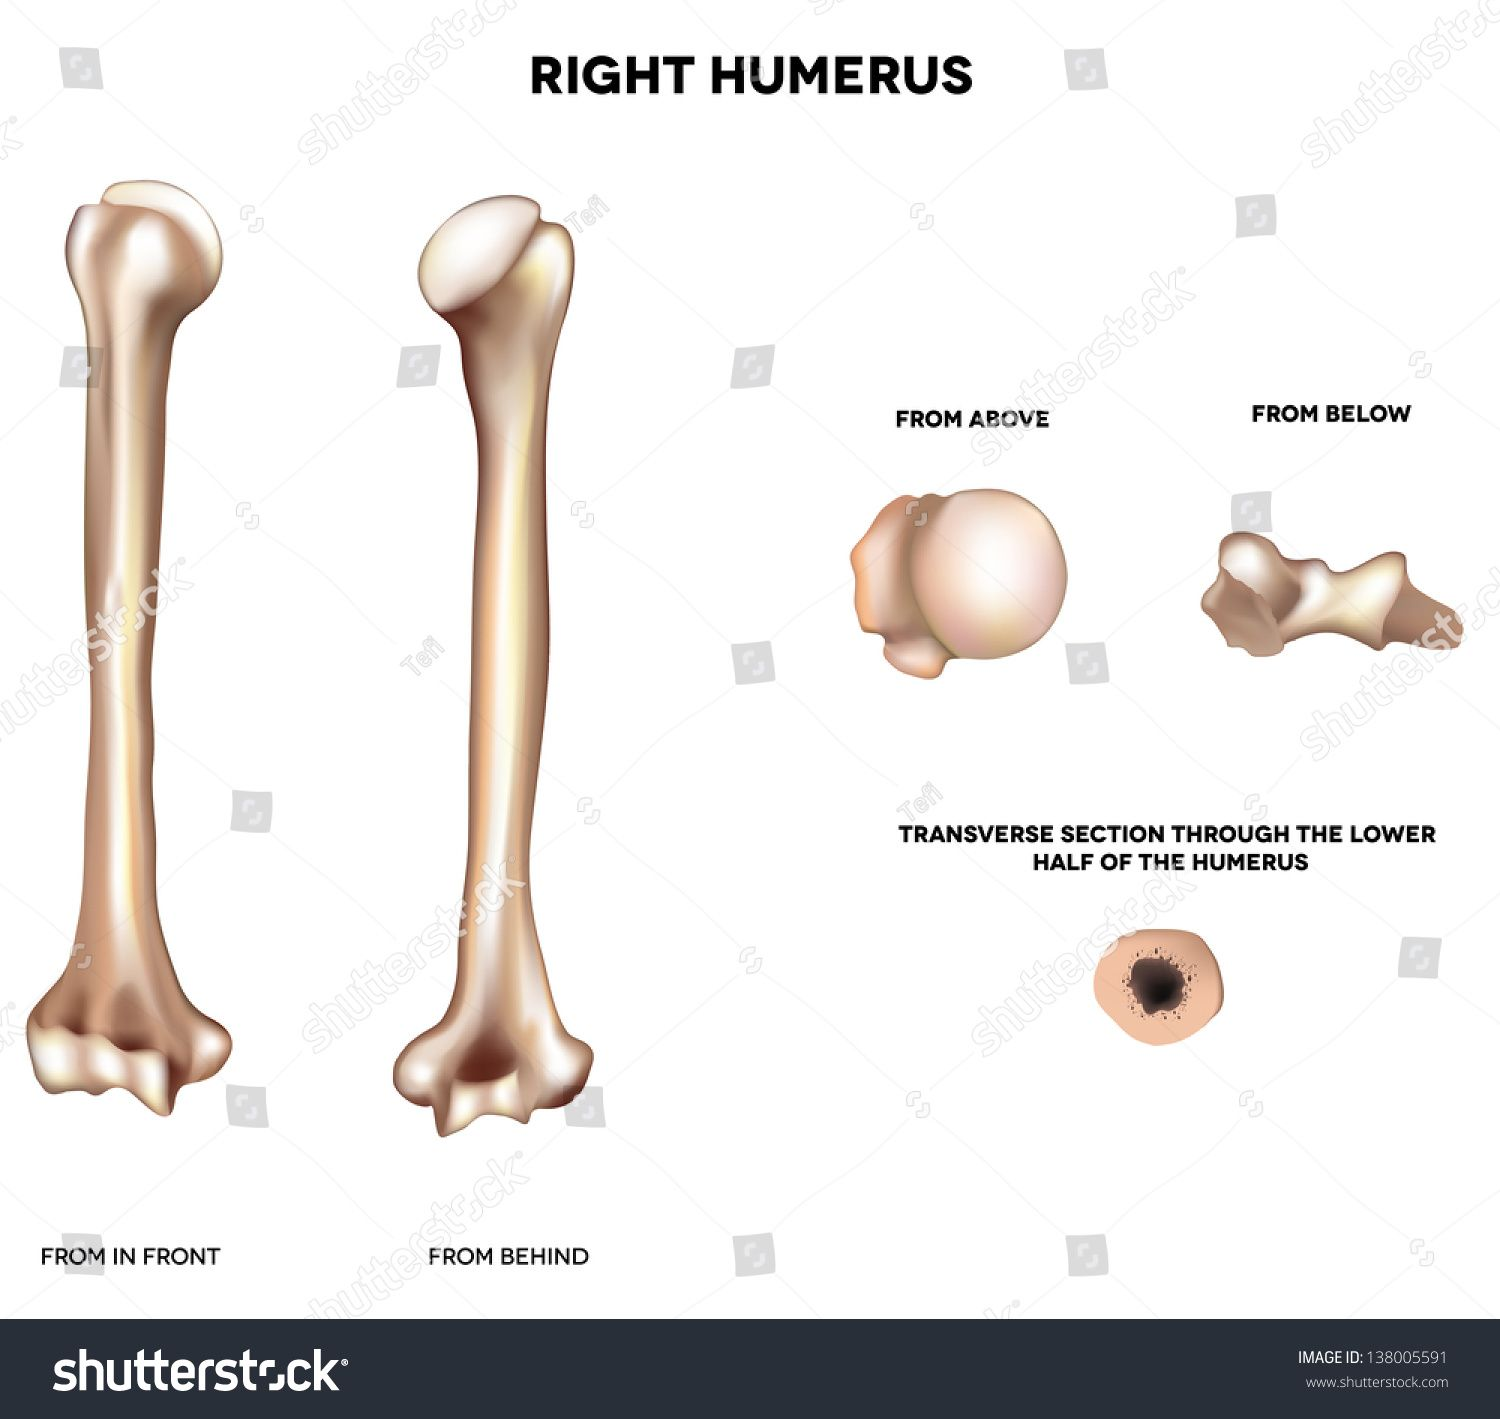 Humerus Upper Arm Bone Detailed Medical Illustration From Front